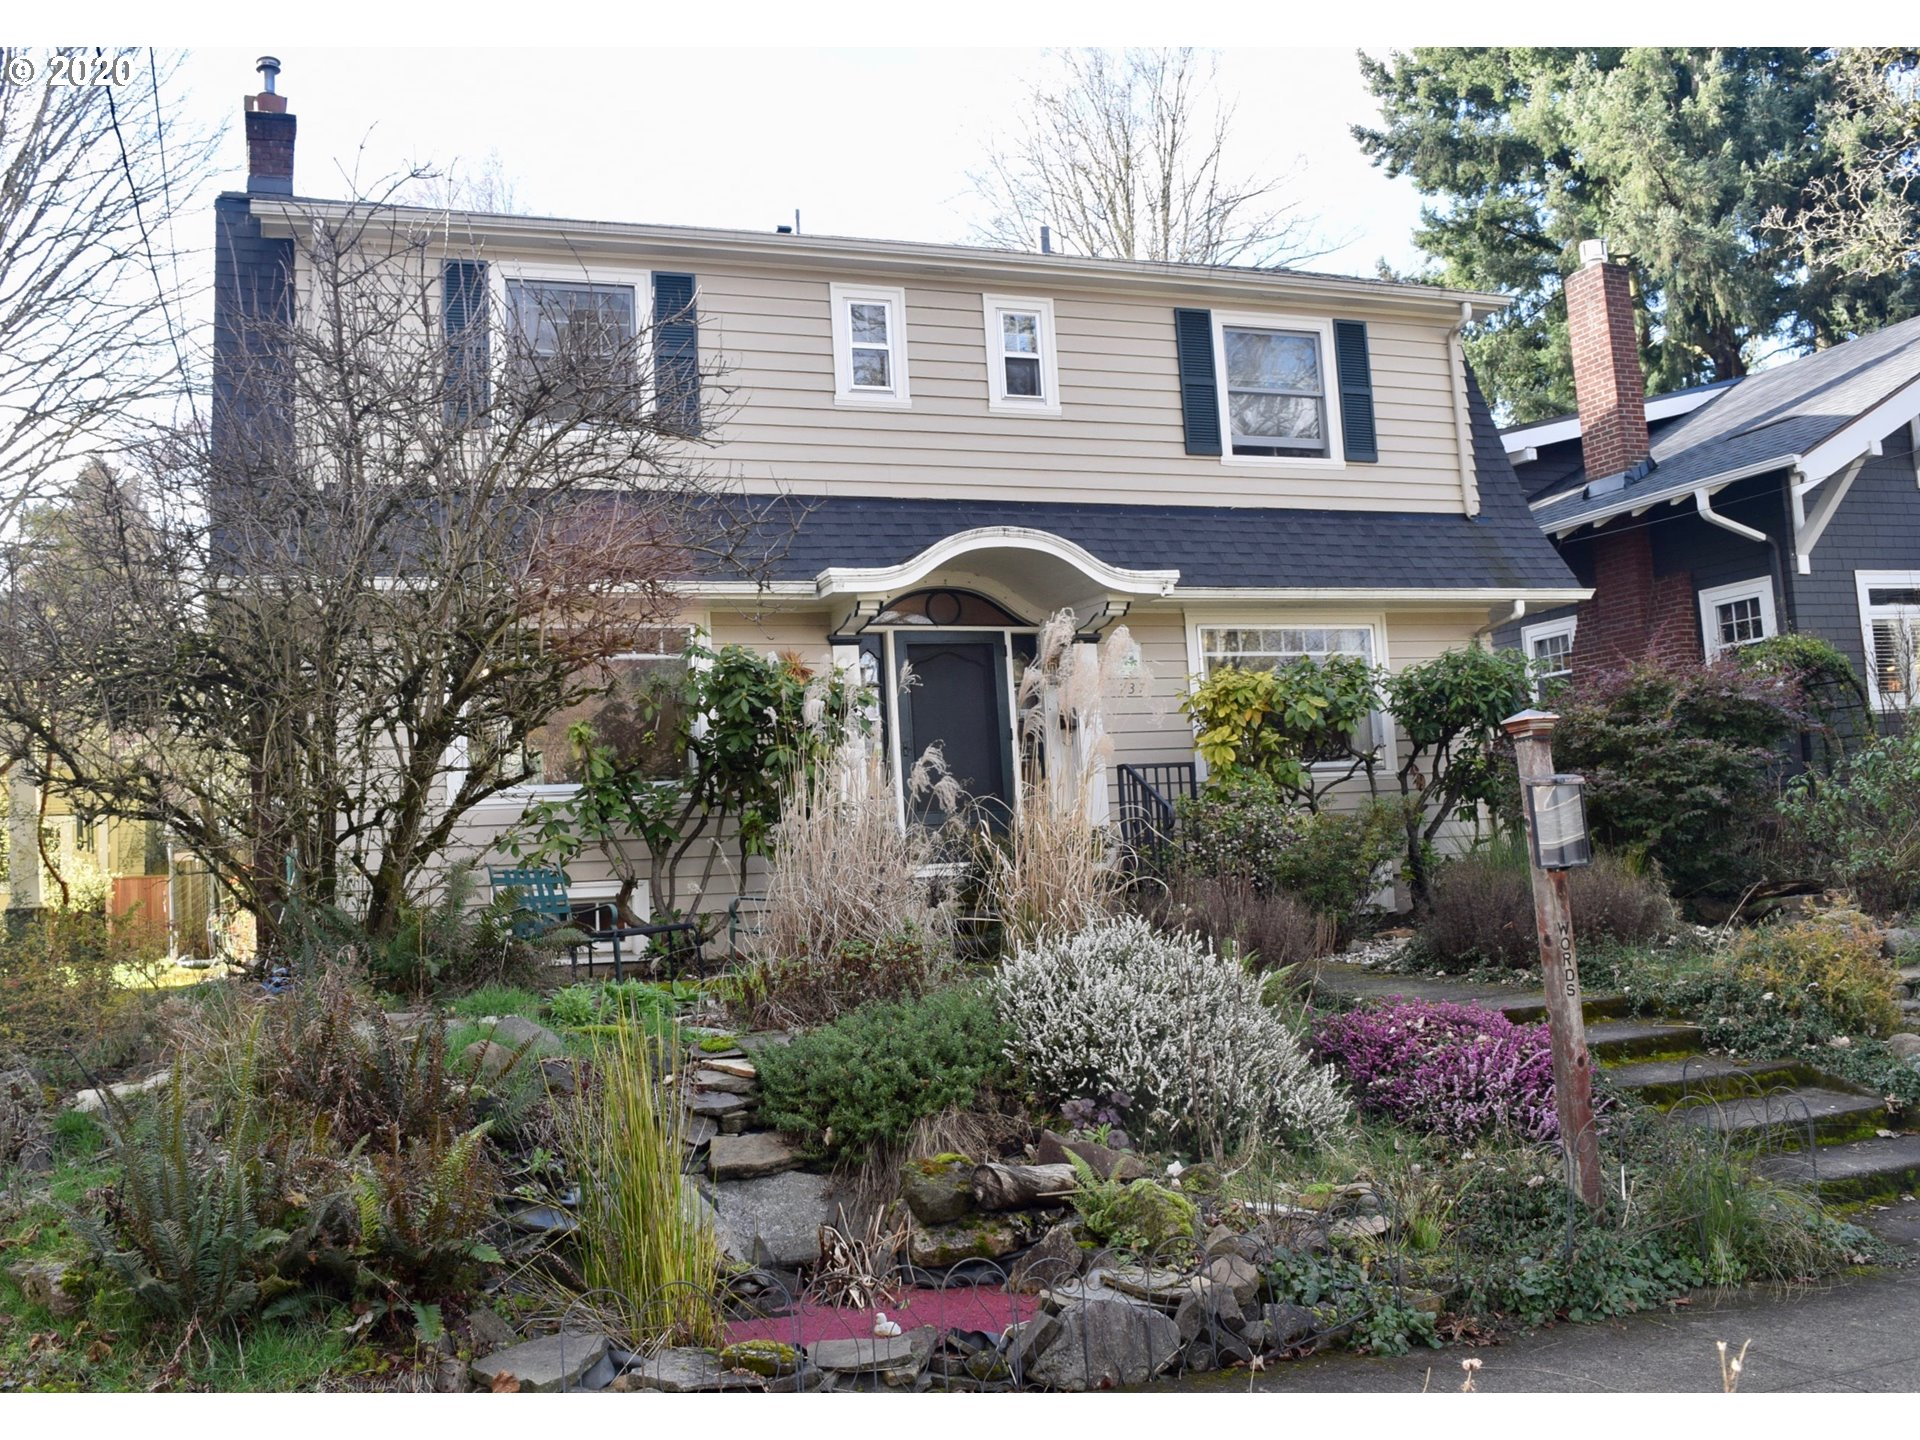 Classic Irvington Colonial on a great street. Don't miss this opportunity. Cosmetics needed, the hard stuff is complete. Large living rm,central hallway,oak floors,picture rail,crown moldings, this place has it all.